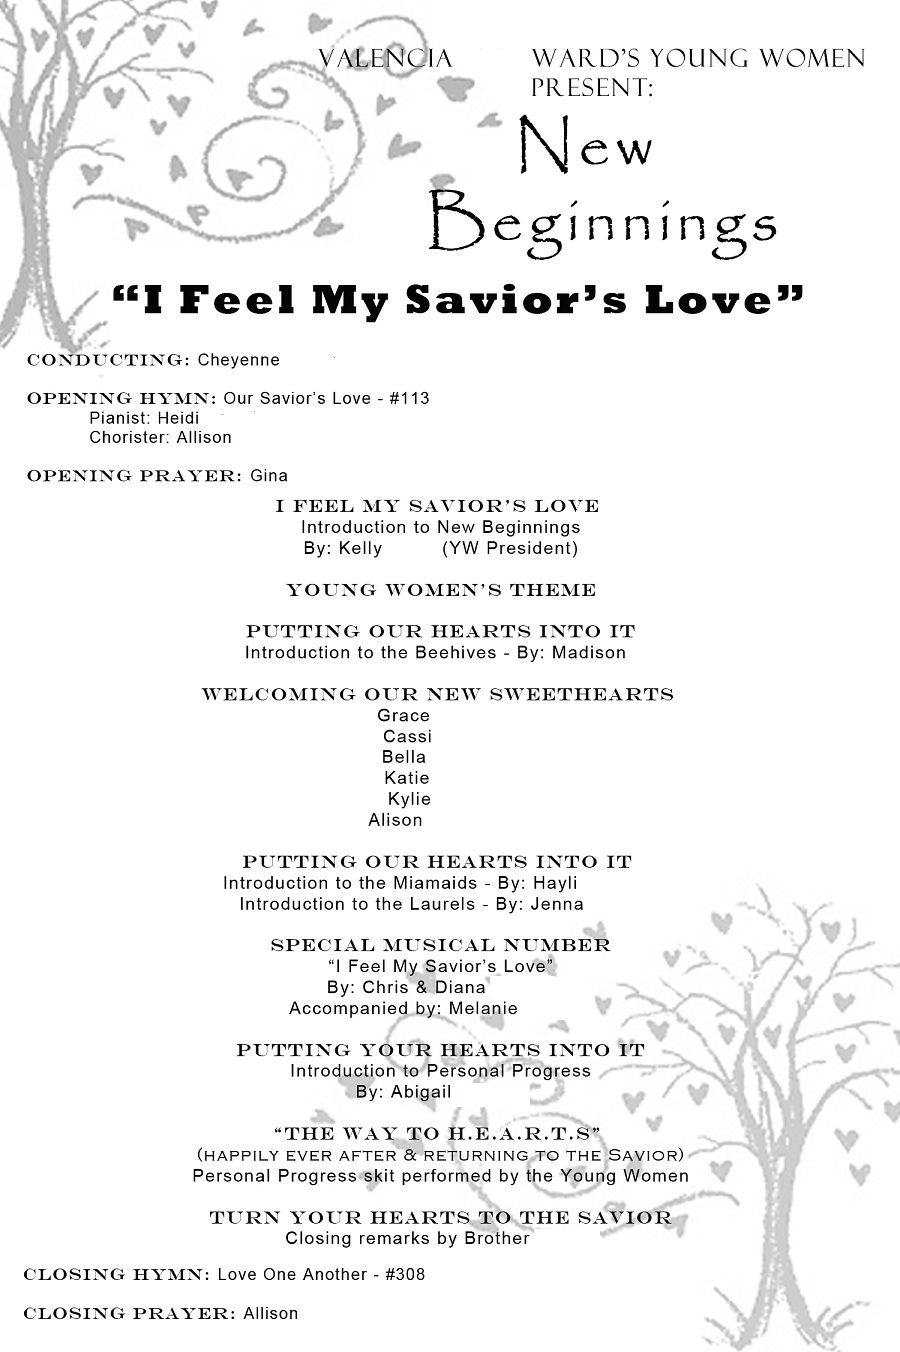 church invitation for valentine banquet | just b.CAUSE